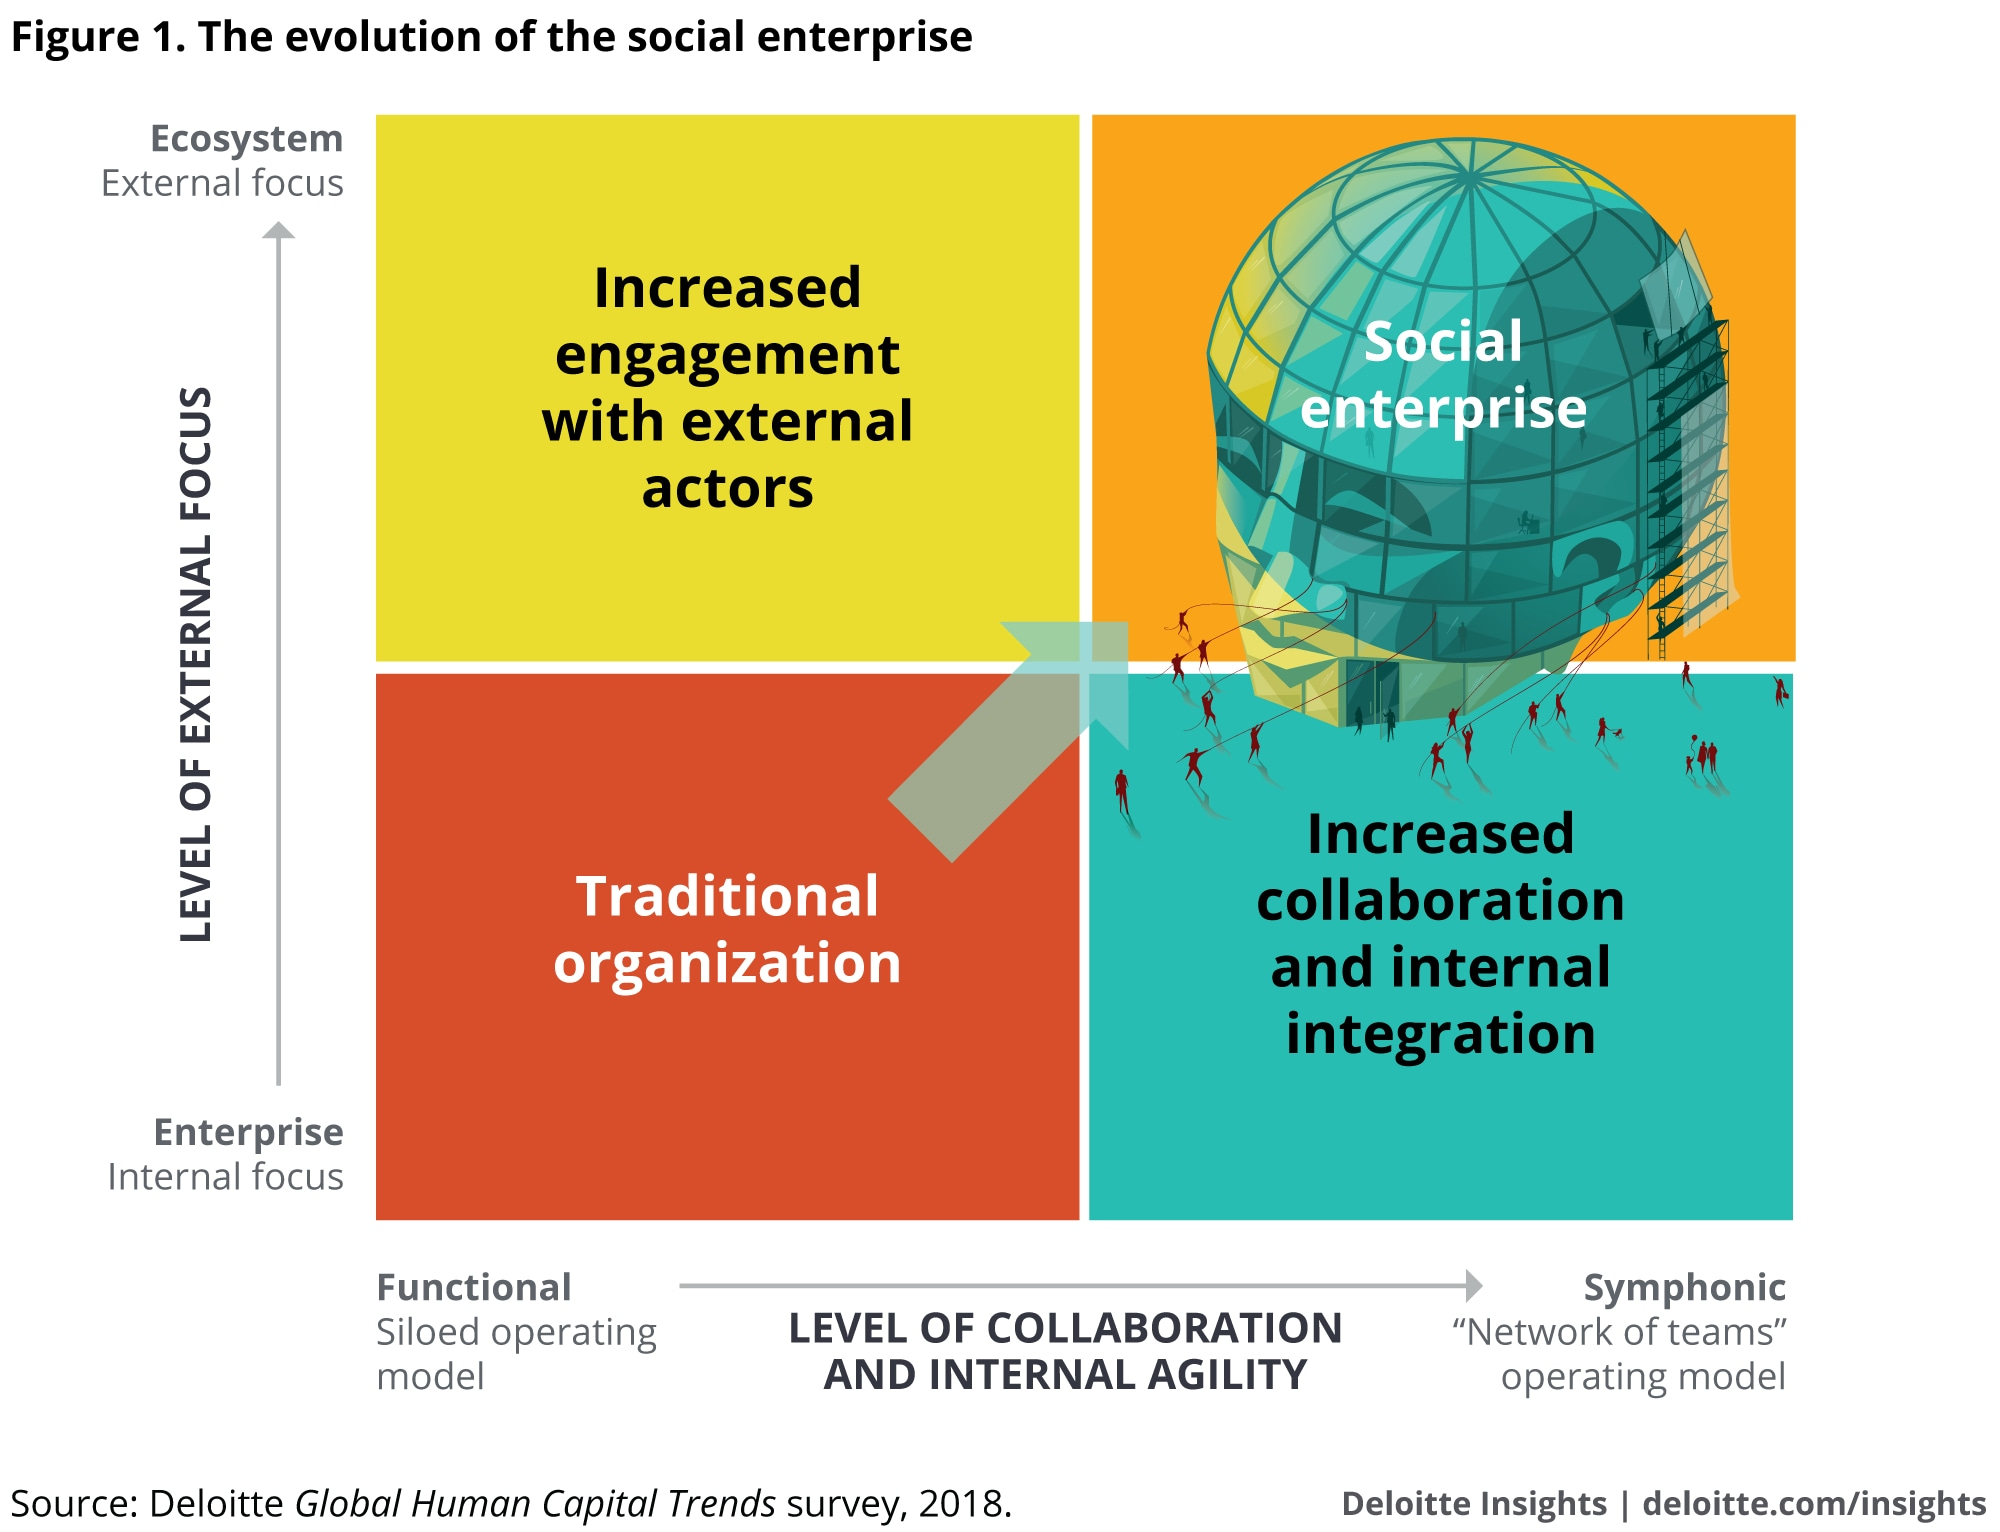 The evolution of the social enterprise